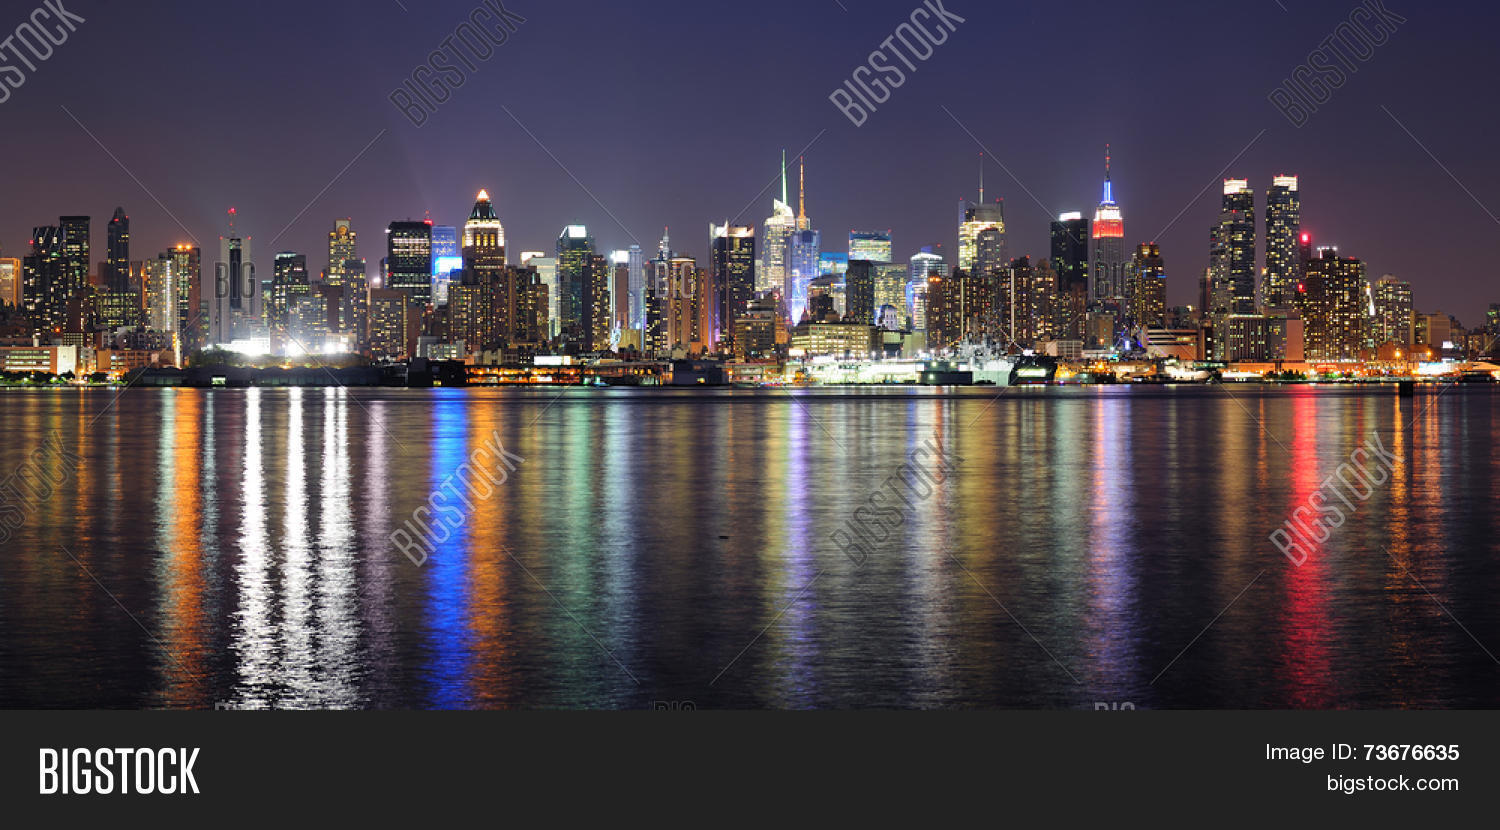 america,apartment building,apartments,architecture,bank,bank building,building,buildings,city,city at night,cityscape,city skyline,colorful,empire,empire state building,financial,historical,hotels,hudson,illuminated,jersey,landmark,landscape,lights,manhattan,manhattan skyline,metropolis,midtown,modern,new,new york city skyline,new york night,new york skyline,night,night city,nyc,nyc skyline,office,panorama,panoramic,panoramic landscape,red,reflection,river,shore,skyline,skyscraper,square,state,times,times square,time travel,travel,urban,urban city,usa,water,waterfront,weehawken,york